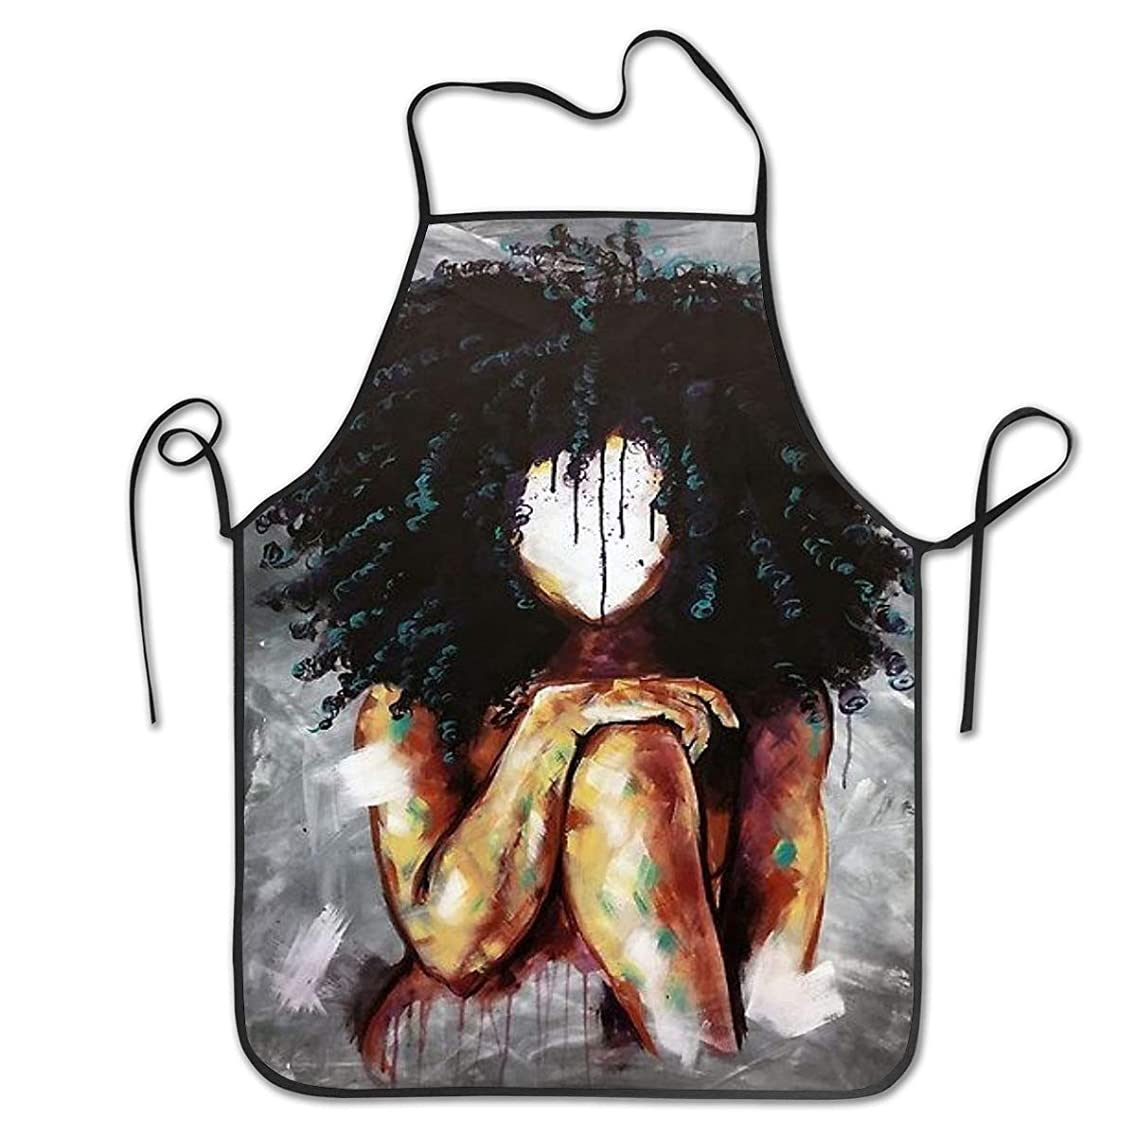 NiYoung Novelty Apron for Restaurant Home Kitchen - Water Drop Resistant - Women Waitress Apron with Comfortable Neck/Sides Straps - Painting Afro Lady African American Black Women Girls Art